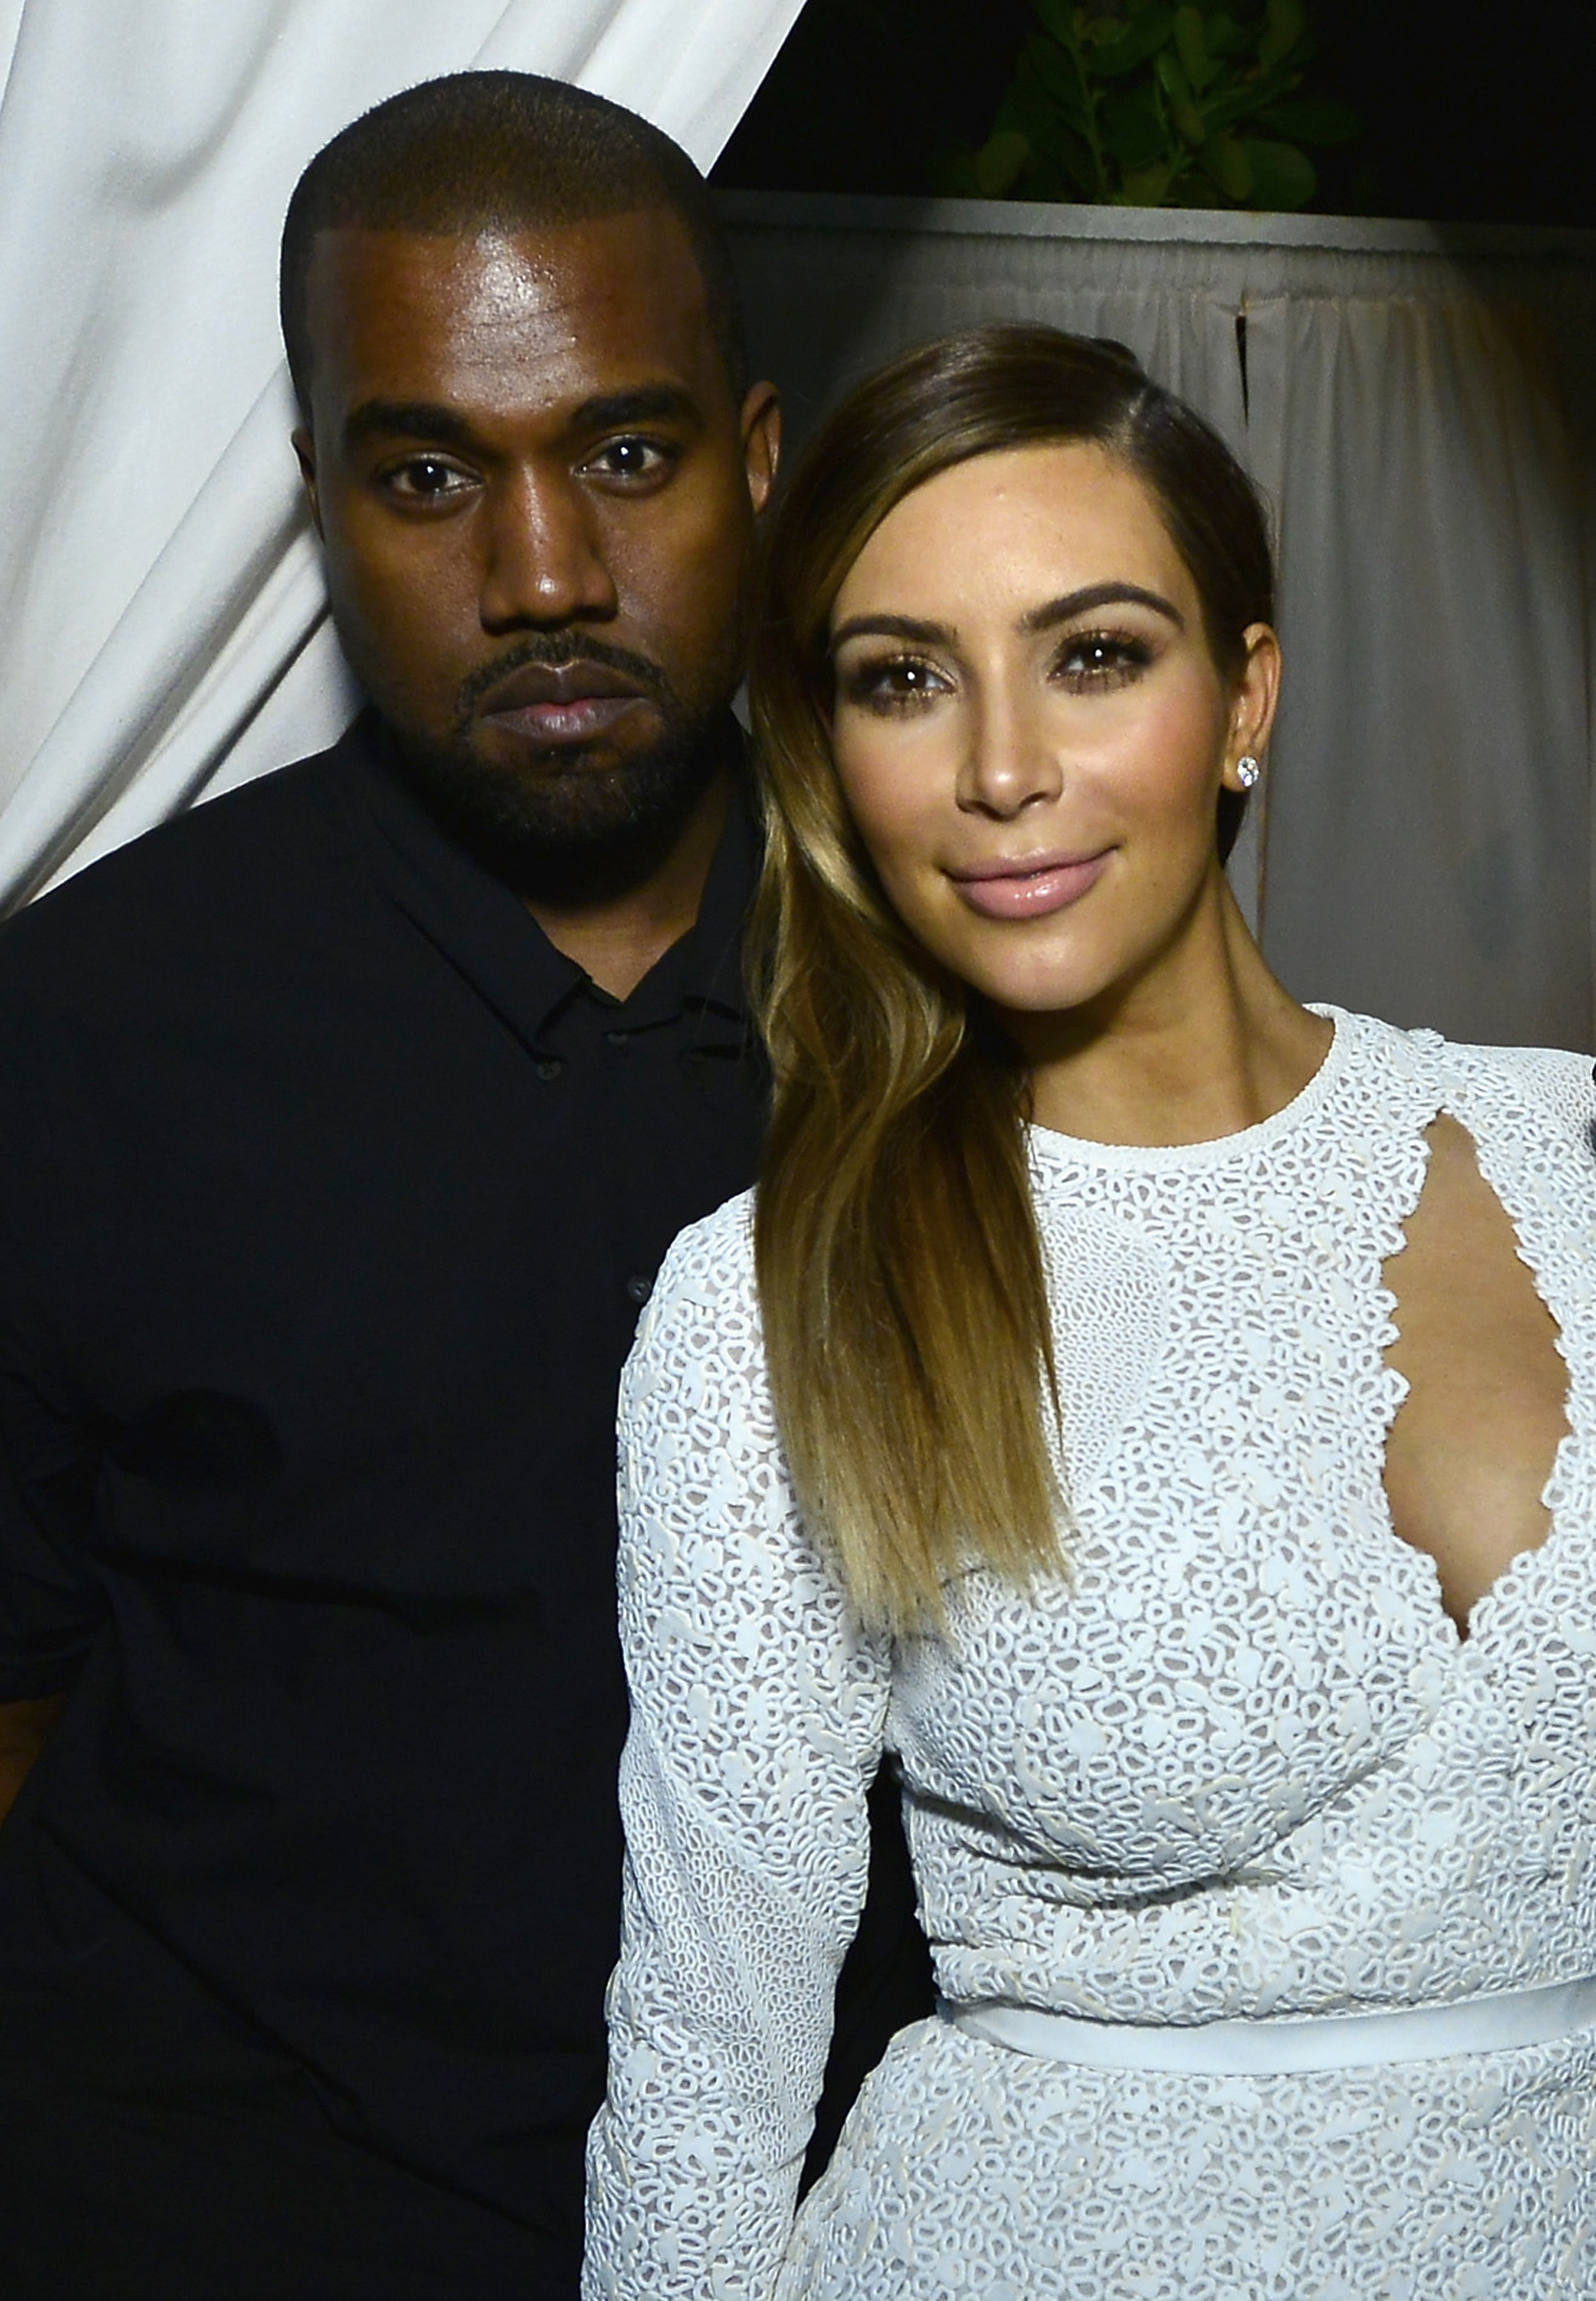 Kanye West and Kim Kardashian Are America's Least Desirable Neighbors